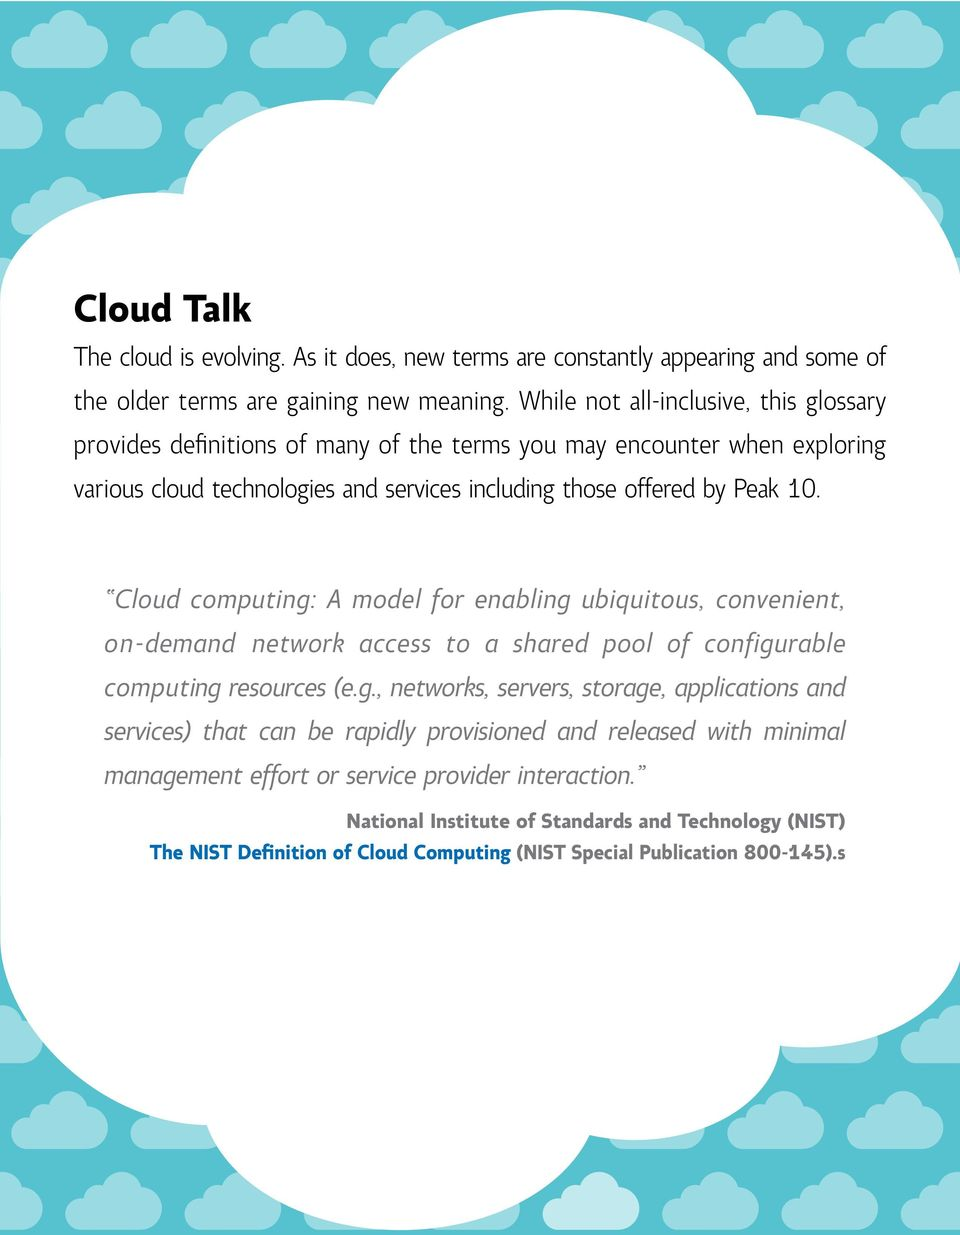 Cloud computing: A model for enabling ubiquitous, convenient, on-demand network access to a shared pool of configurable computing resources (e.g., networks, servers, storage, applications and services) that can be rapidly provisioned and released with minimal management effort or service provider interaction.